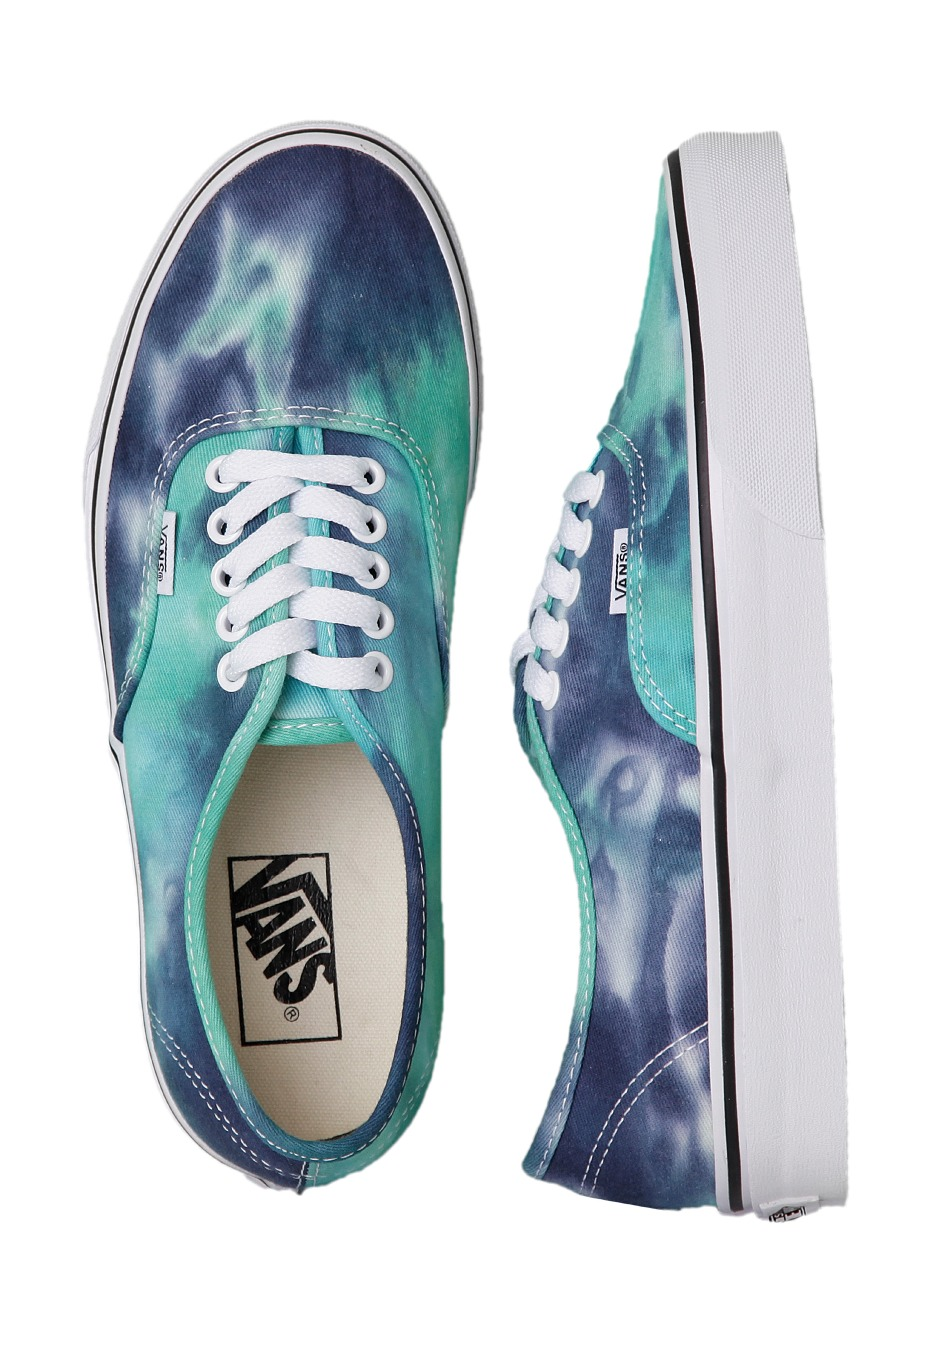 8d76c147d714 Vans - Authentic Tie Dye Navy Turquoise - Girl Shoes - Impericon.com UK